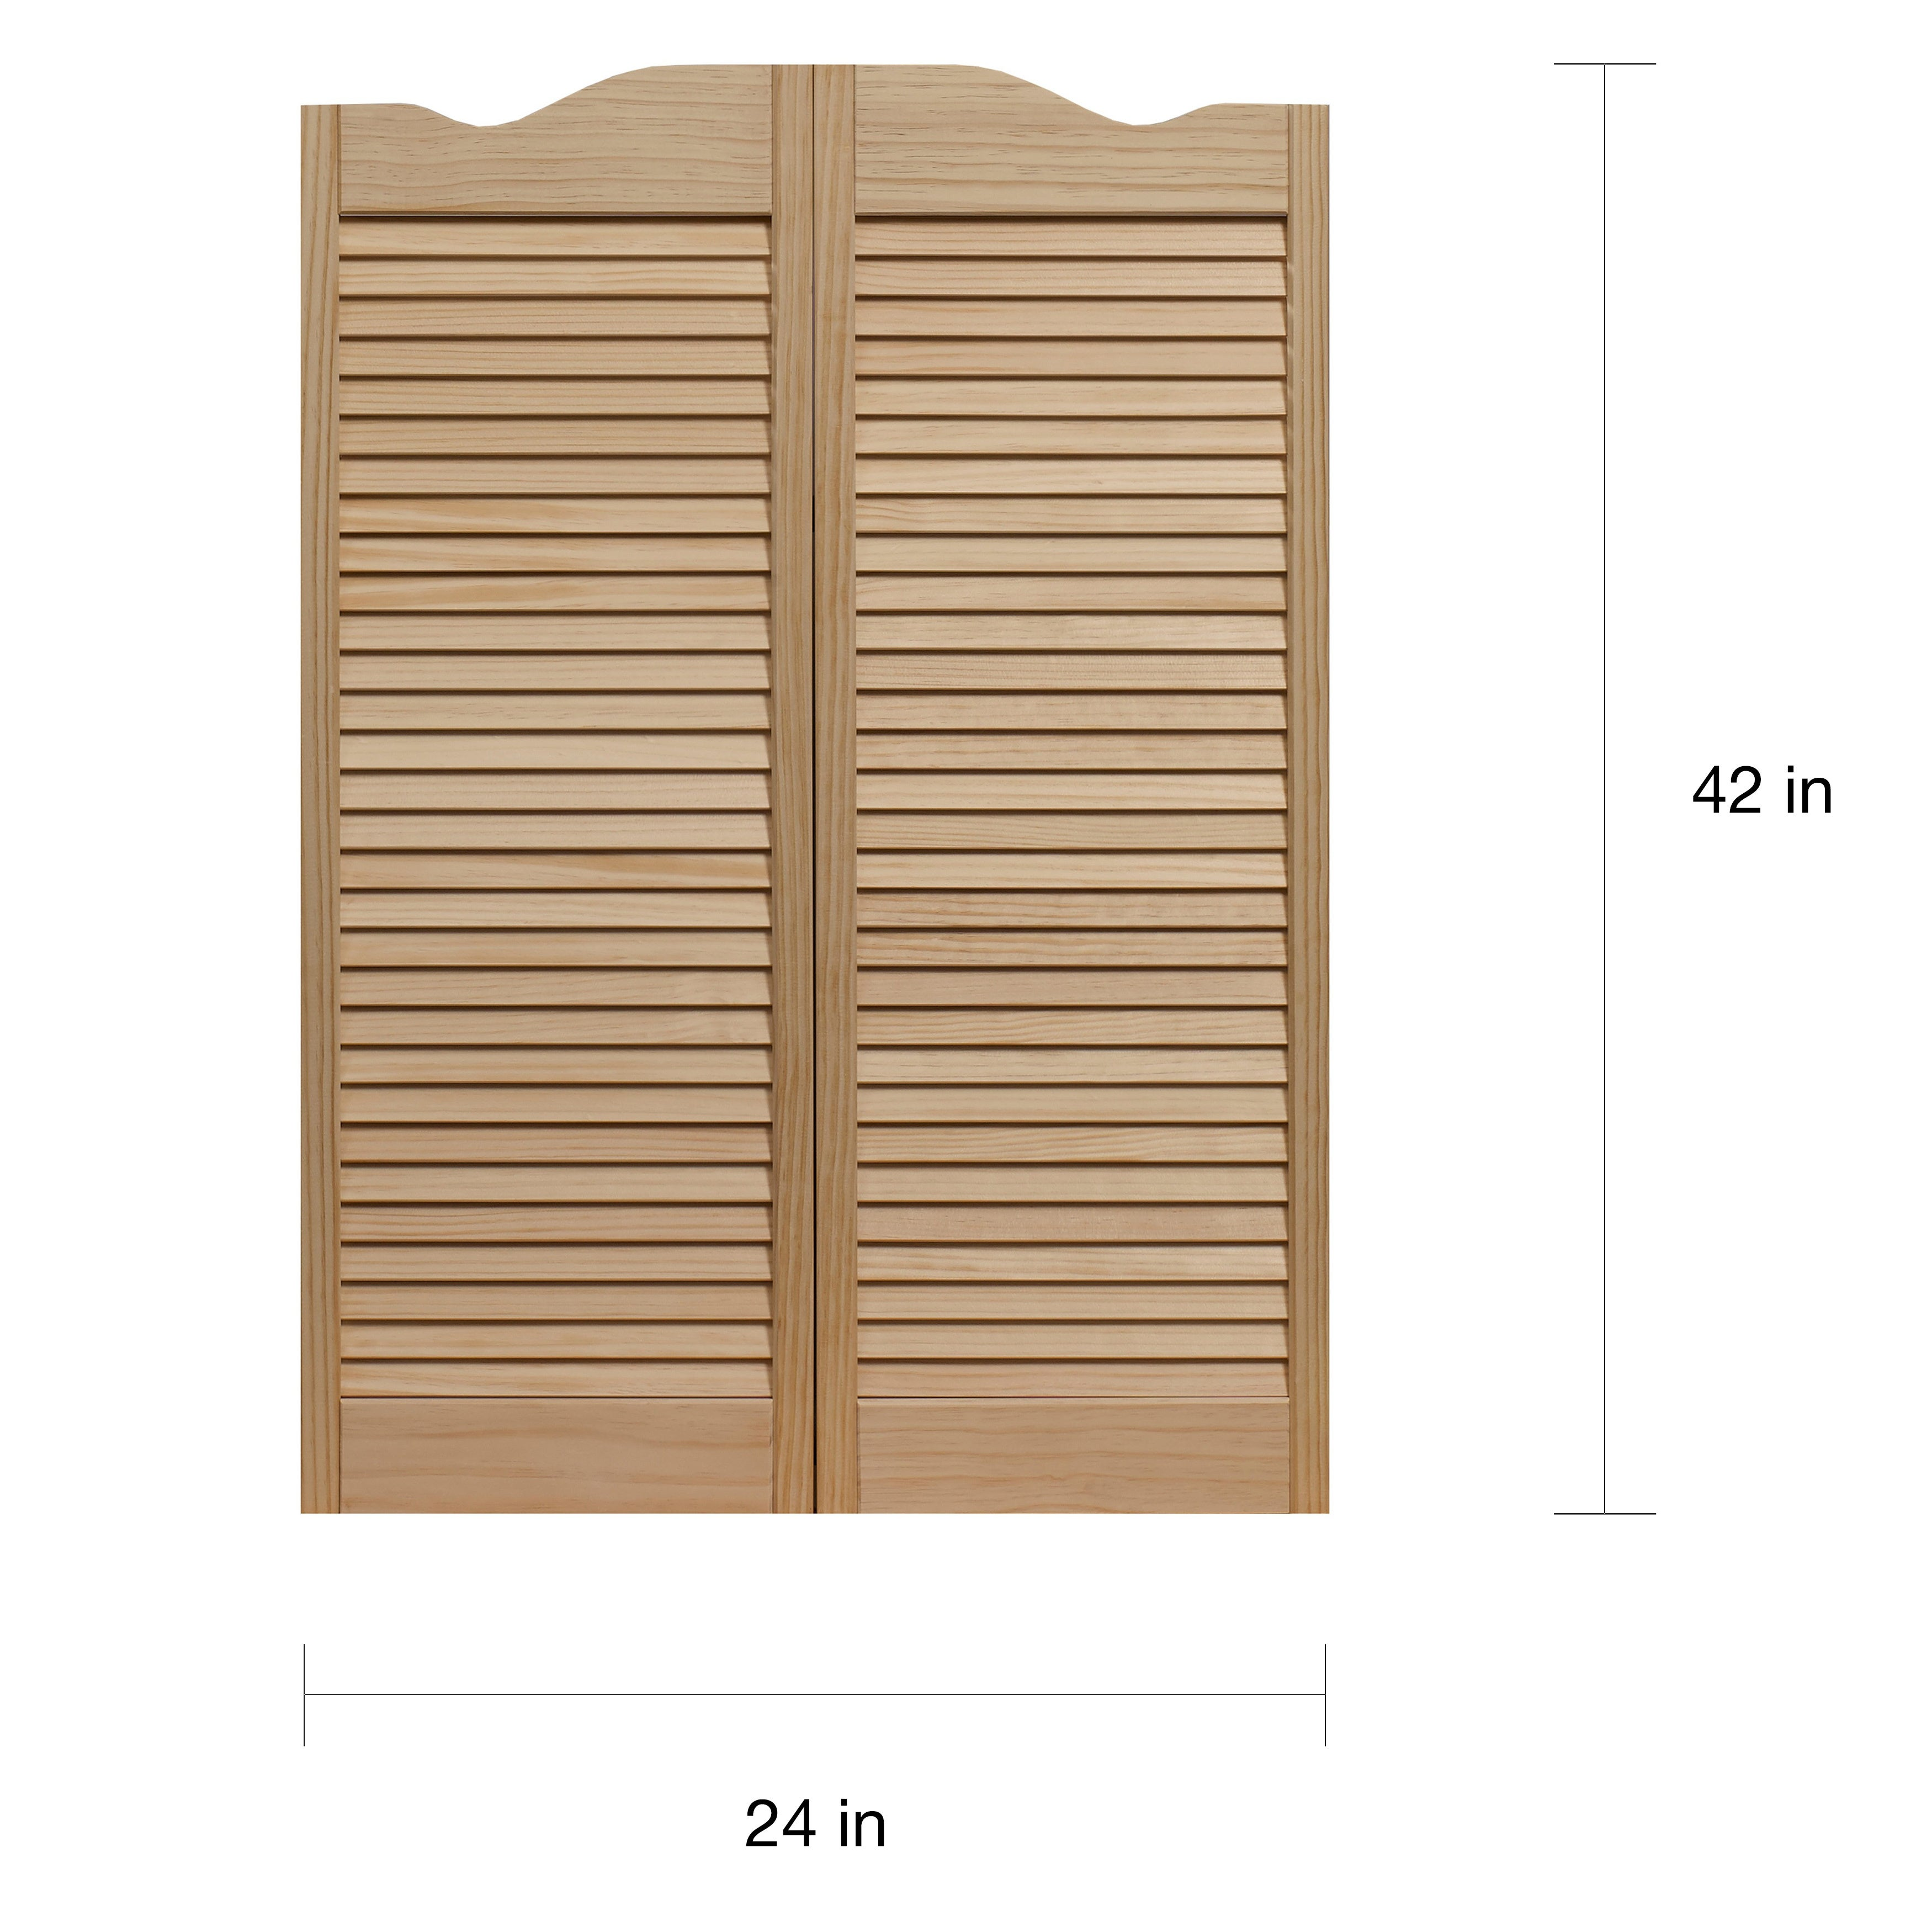 Louvered Kitchen Cabinet Doors: Unfinished Louvered Cabinet Doors